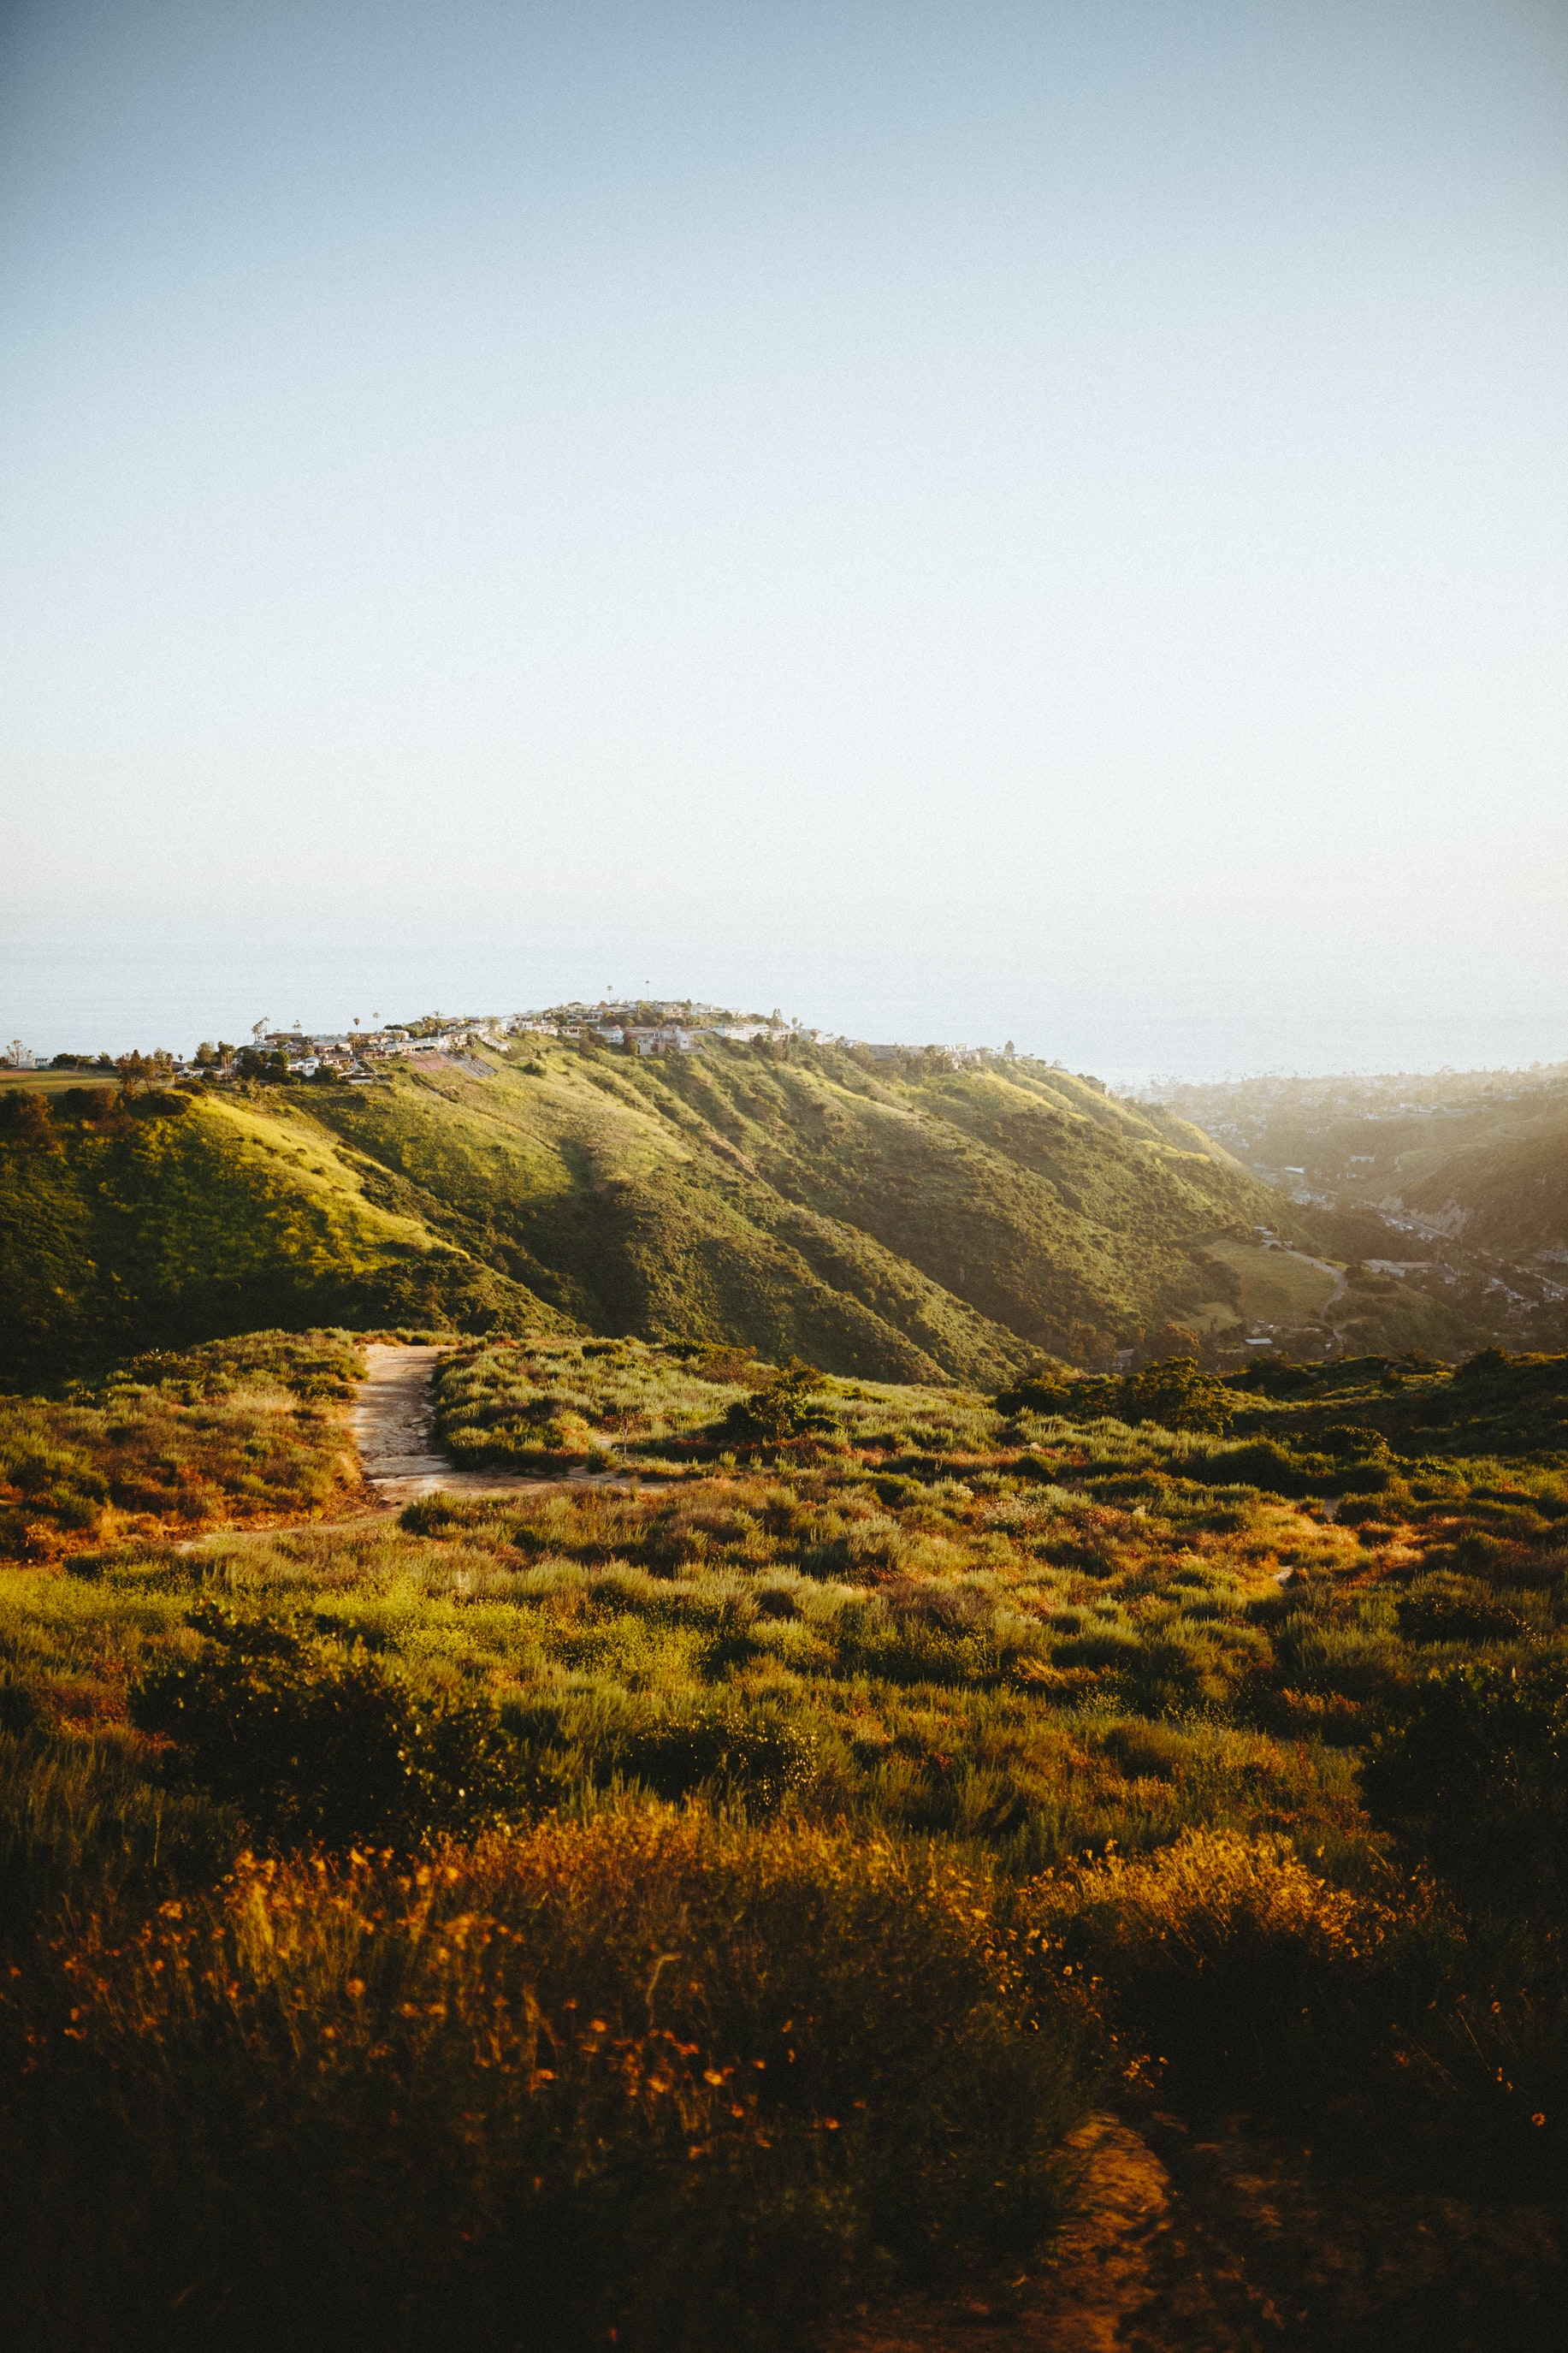 Green hills and valleys at Laguna Beach